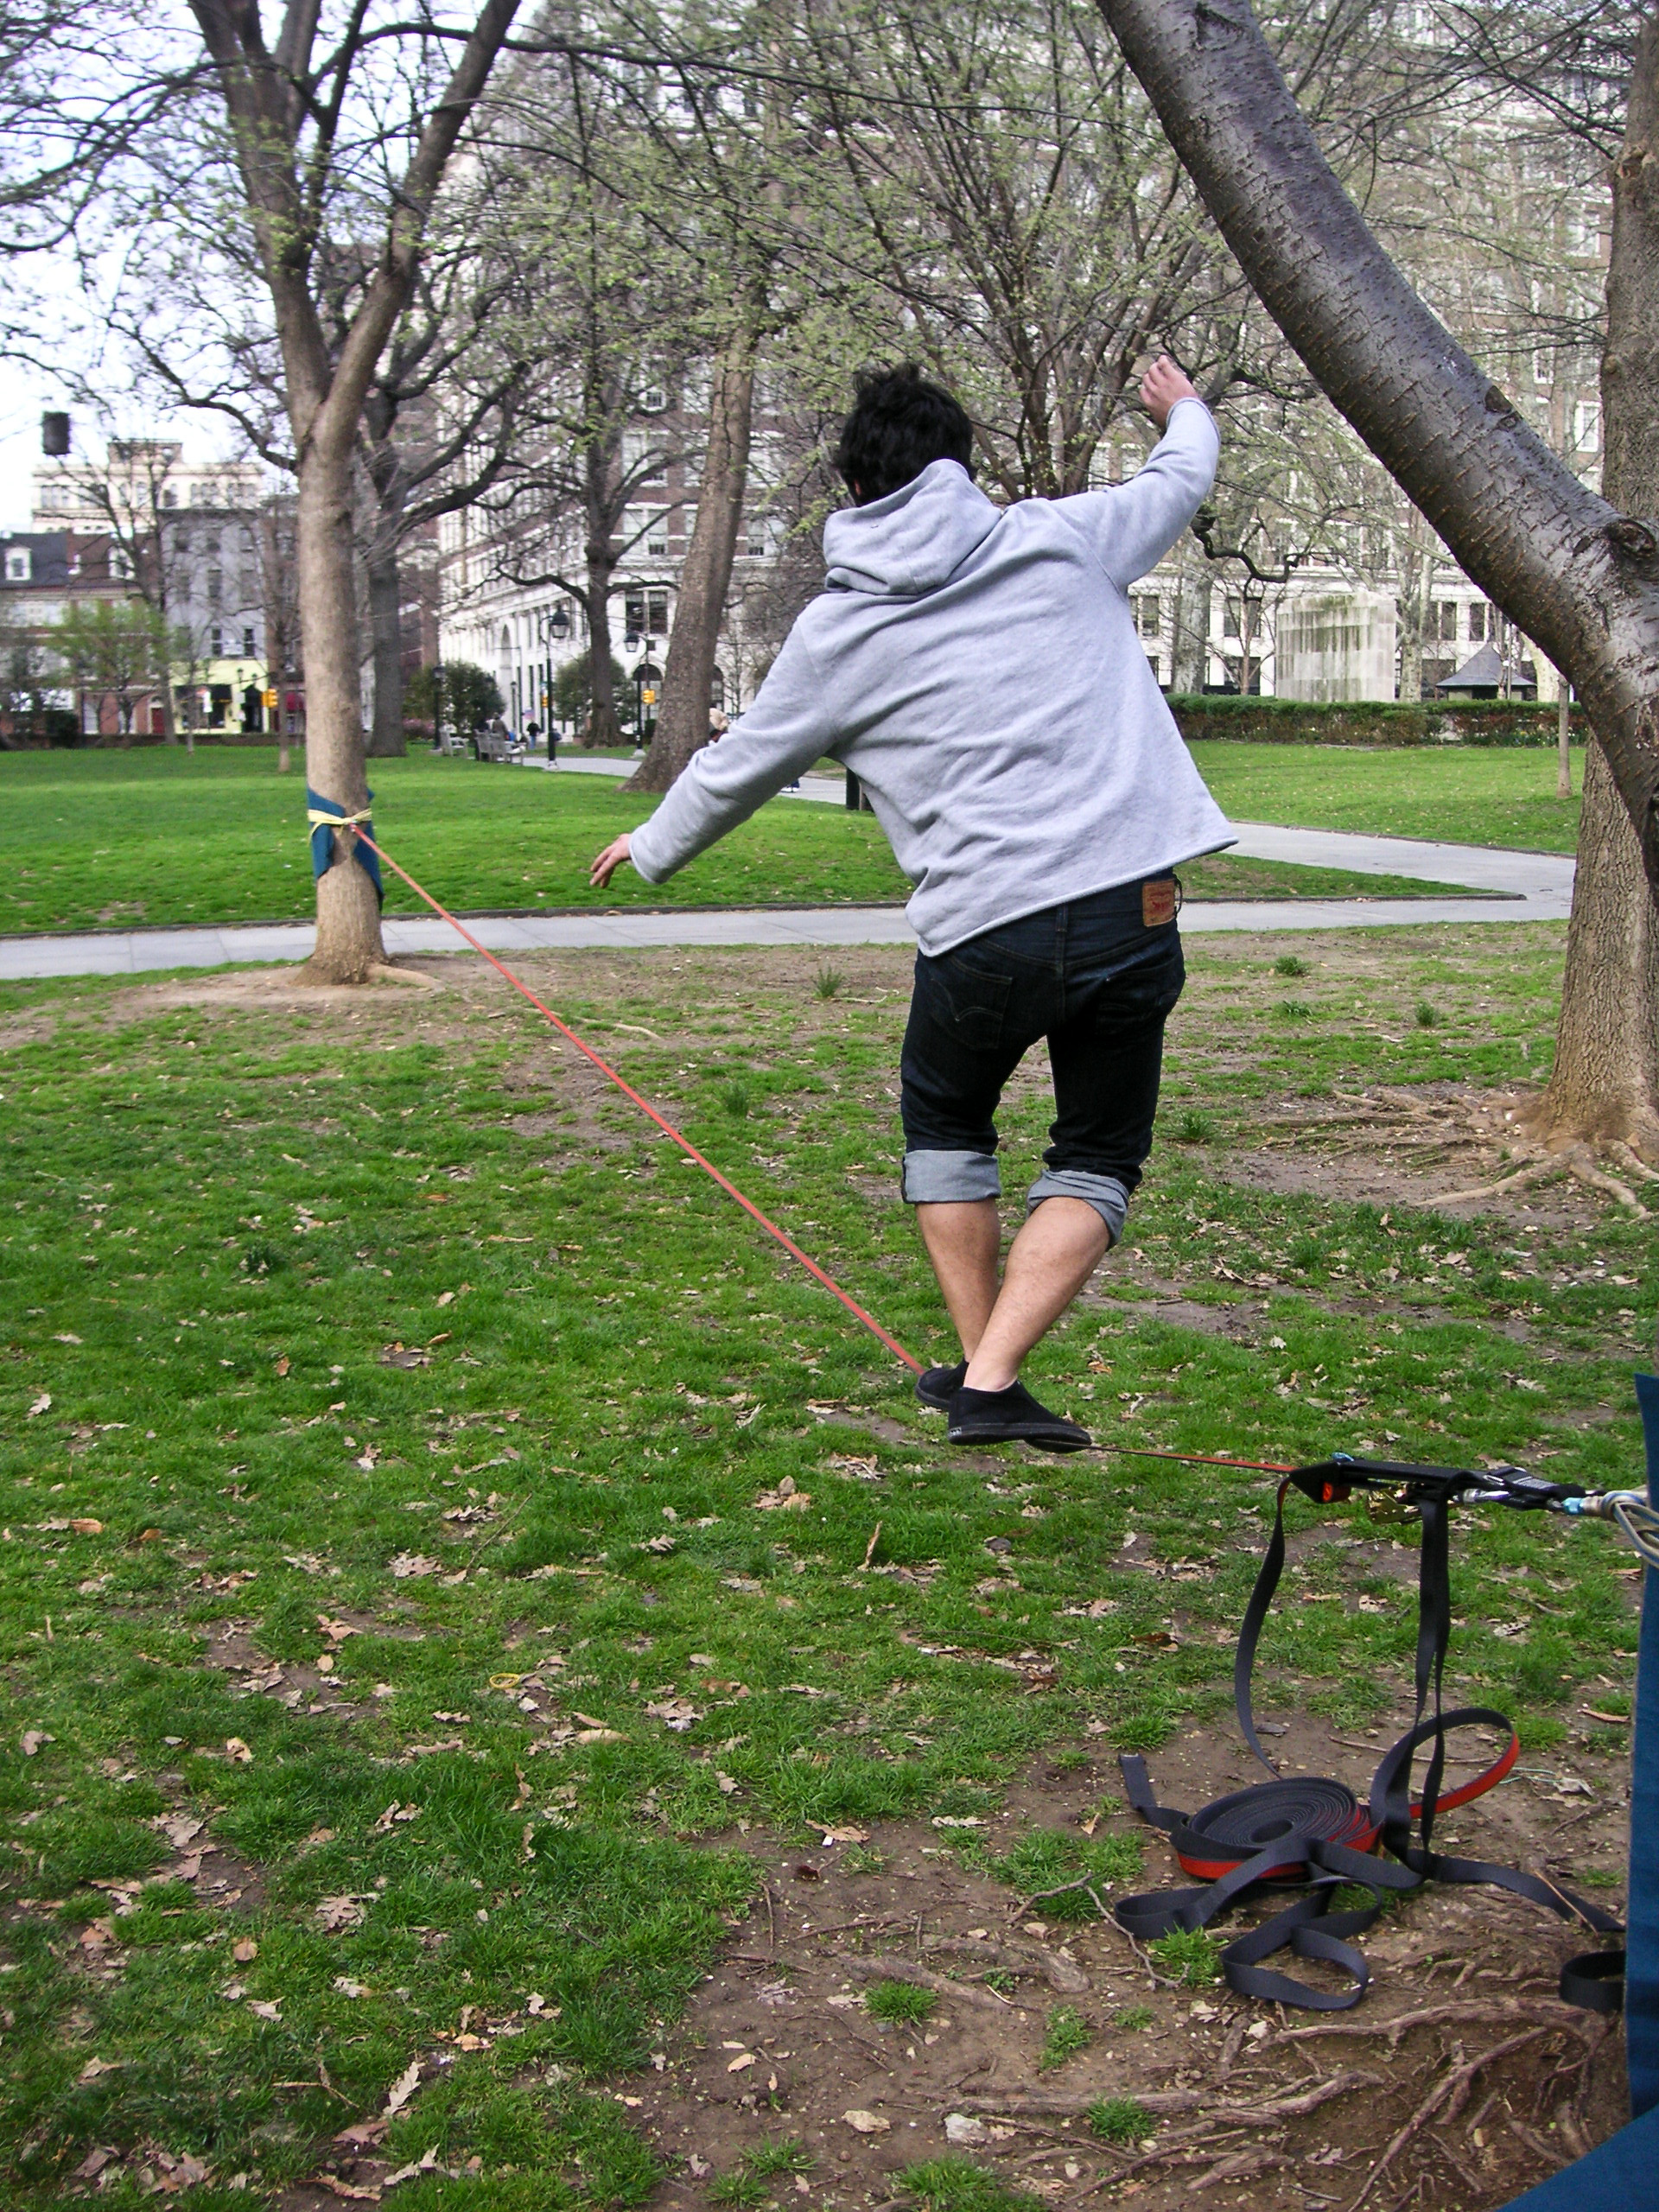 The initial movement inspiration, slacklining.